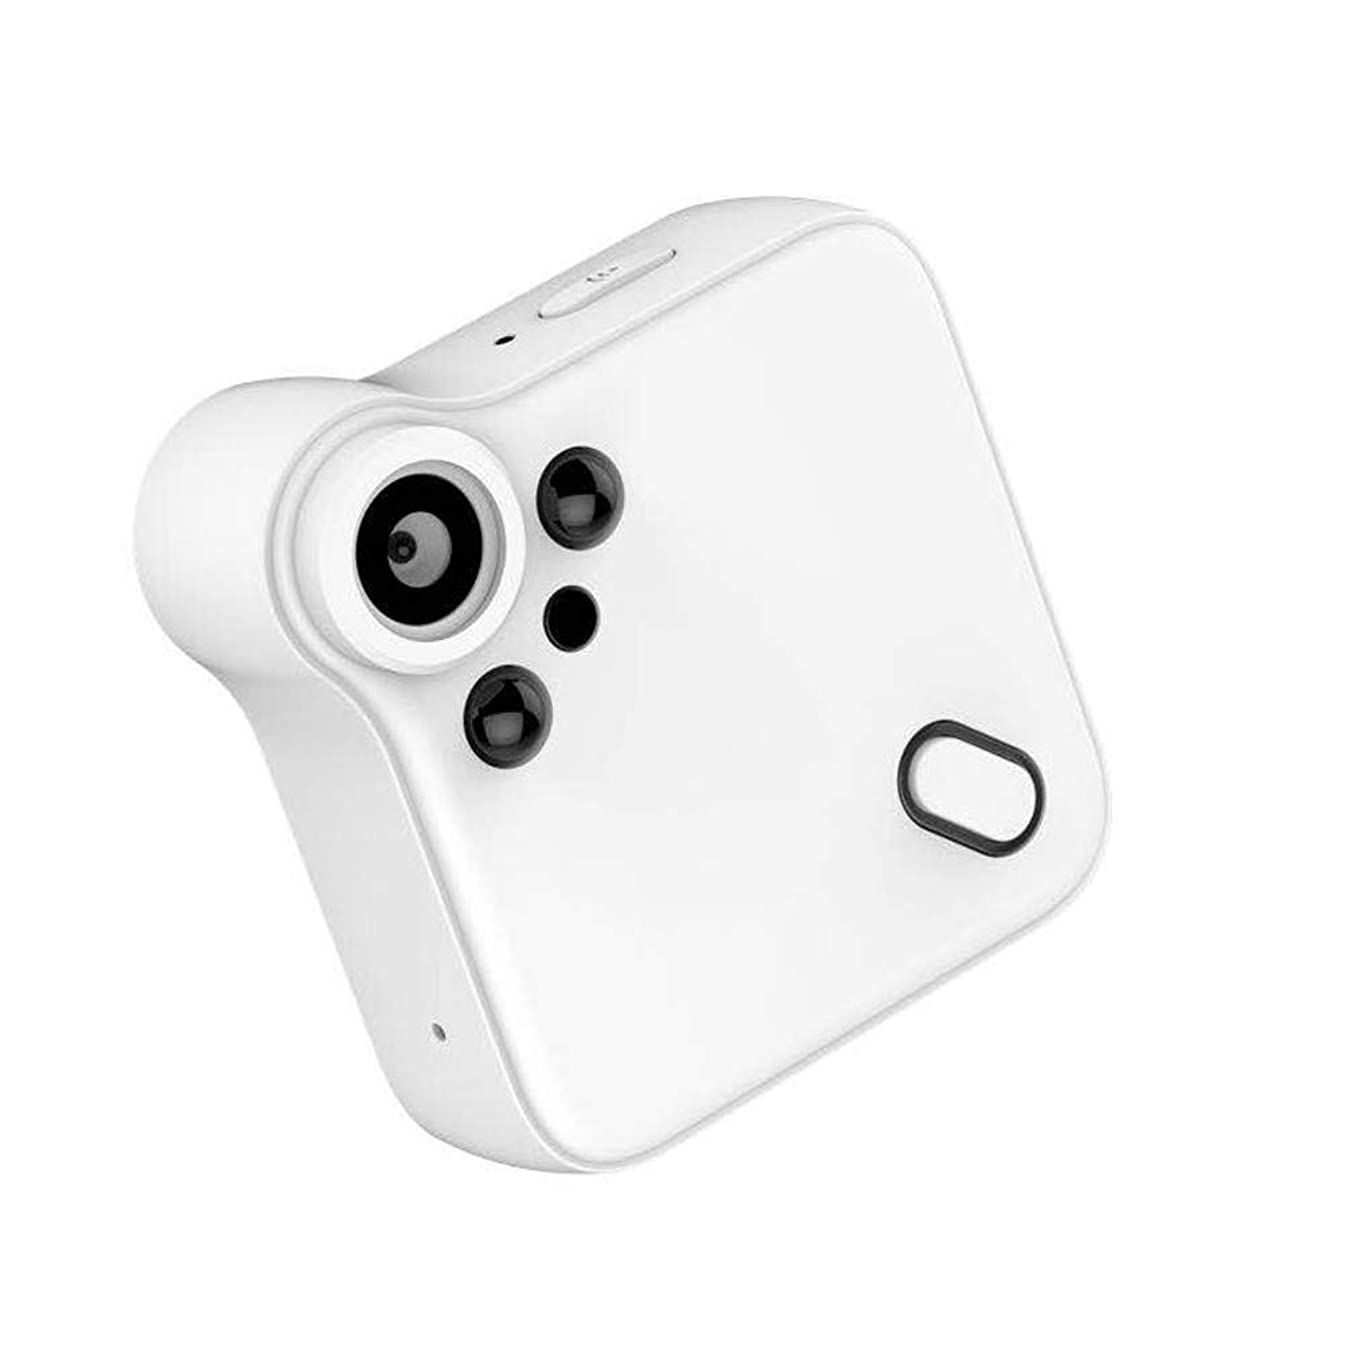 WiFi Mini Spy Hidden Cameras,Full HD 1080P Portable Small Wireless Home Nanny Cam with Night Vision and Motion Detection,Perfect Covert Micro Security Surveillance Camera,White